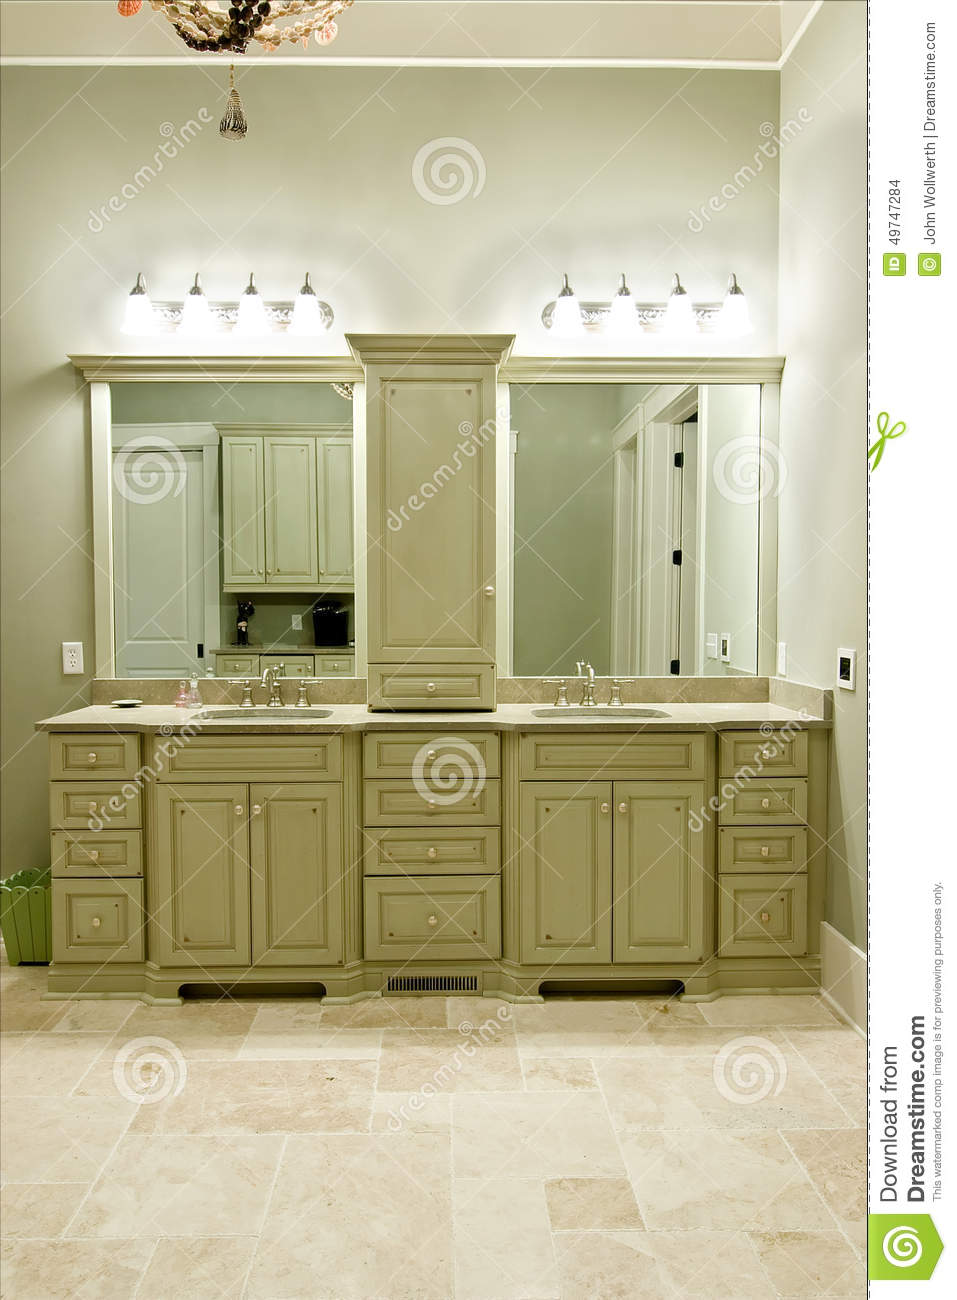 Expensive Bathroom Cabinets Stock Photo Image 49747284